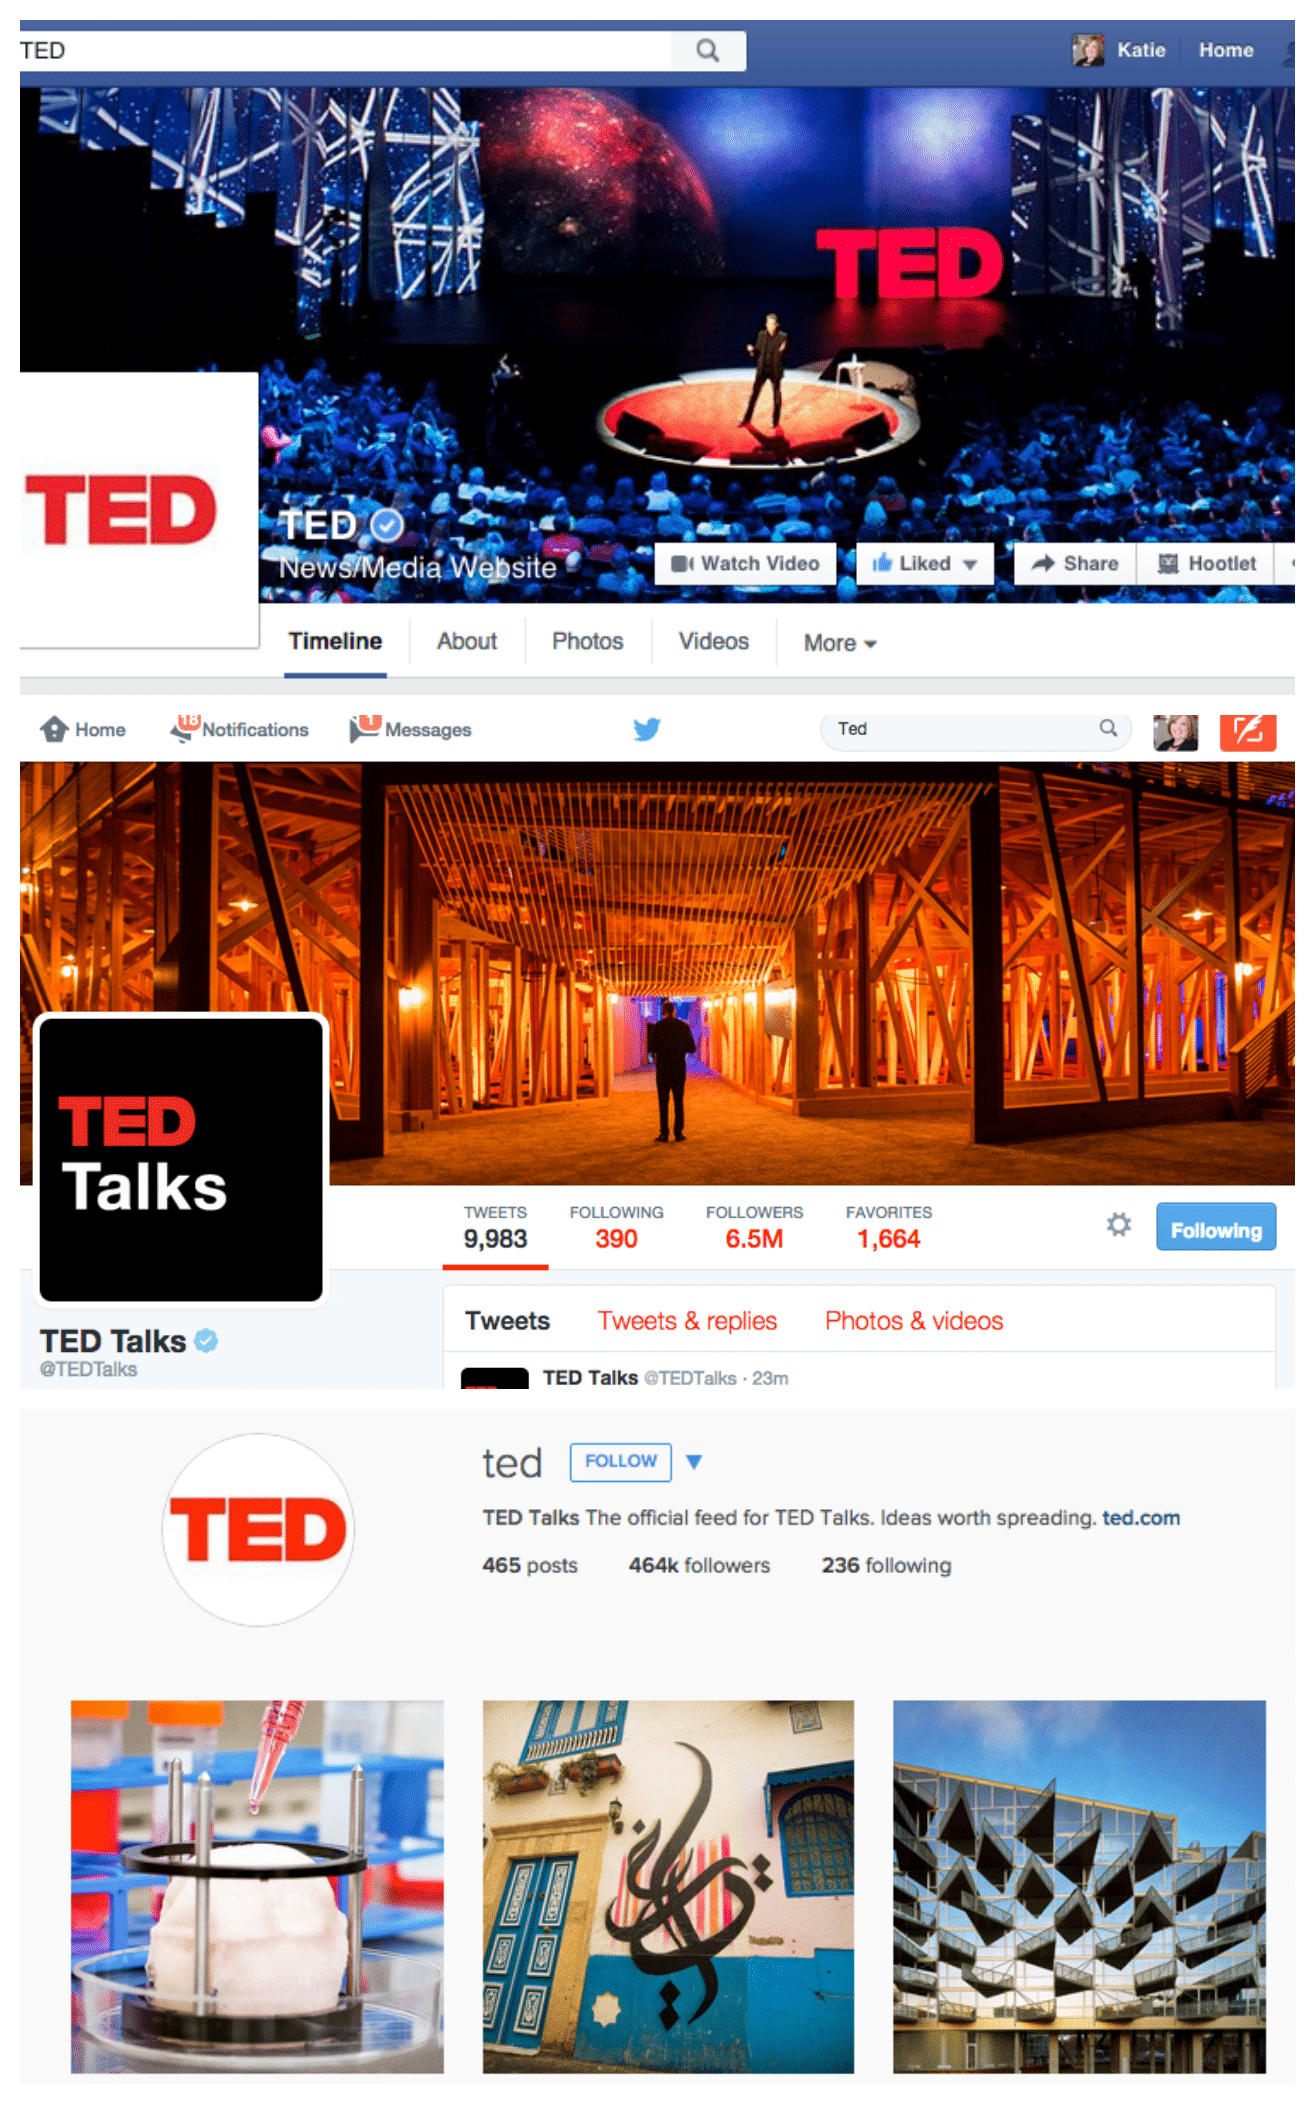 Ted keeps names and verbiage consistent across social platforms - a great example of brand cohesiveness.